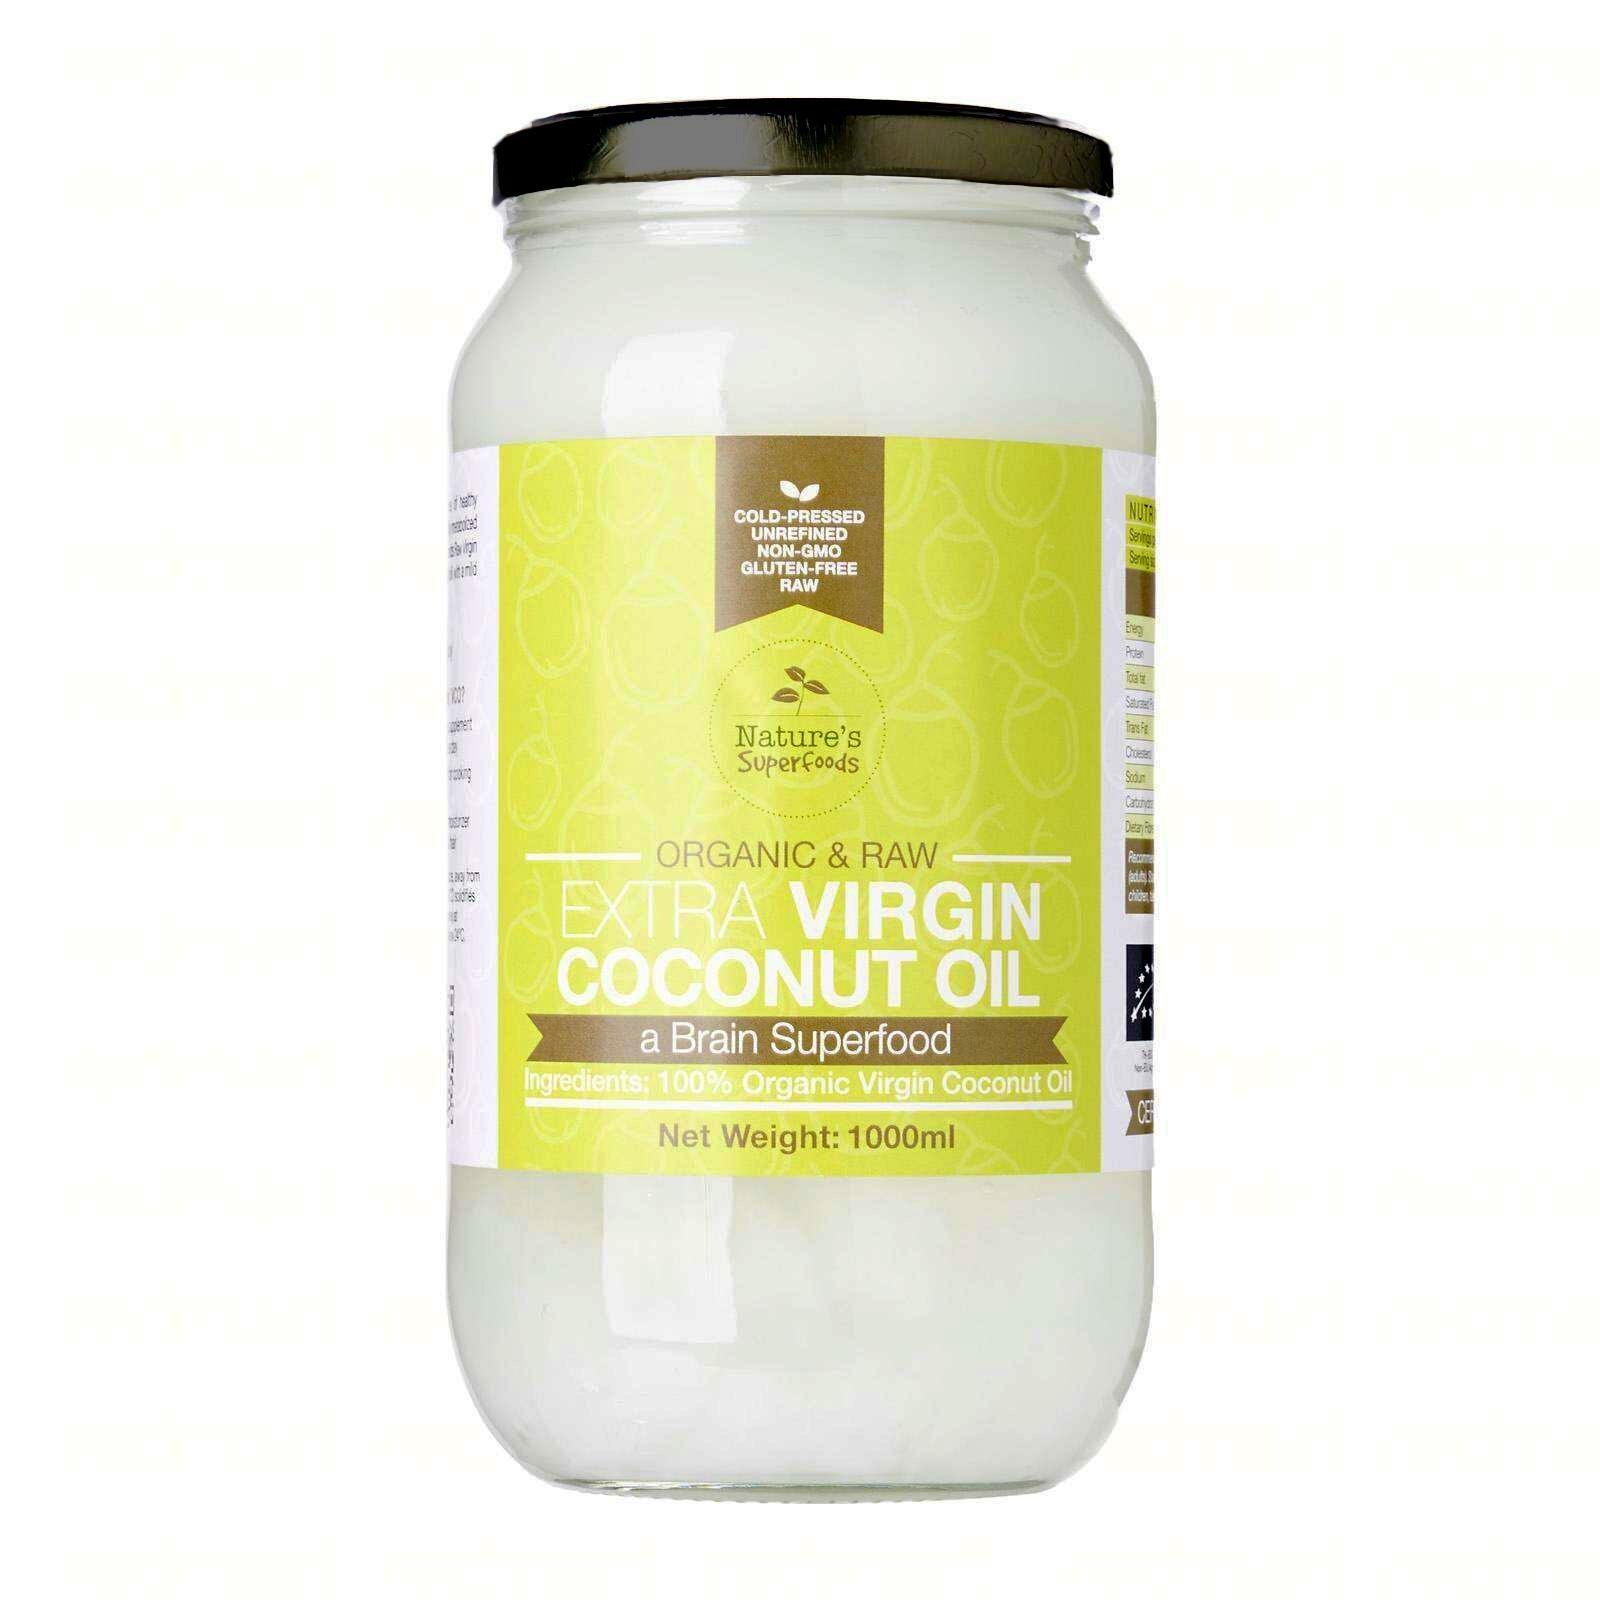 Nature's Superfoods Organic Extra Virgin Coconut Oil(glassjar)